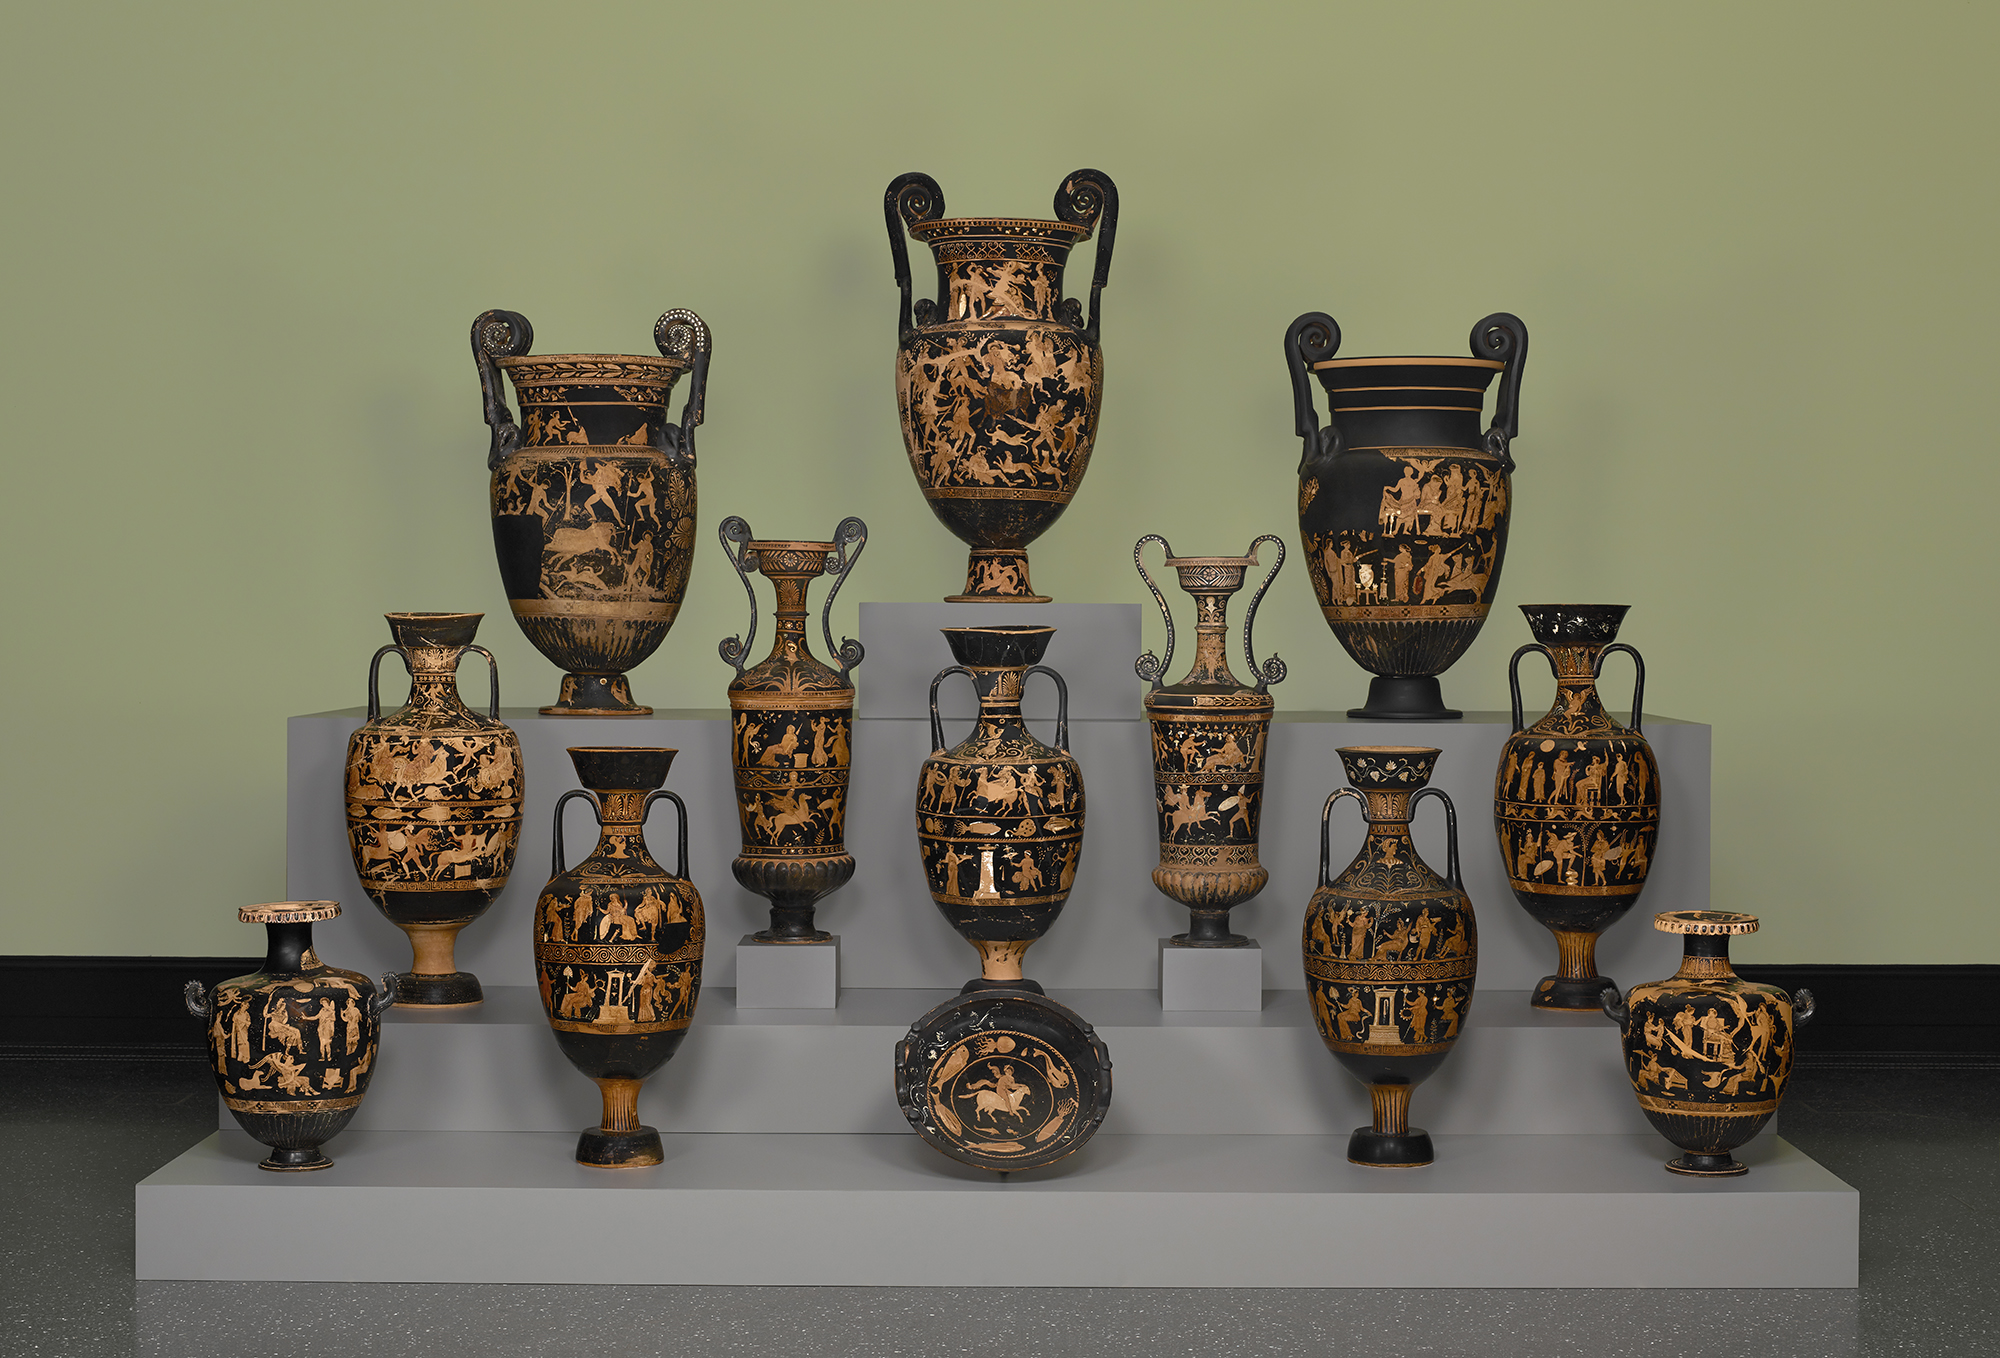 7. Assemblage of 13 funerary vessels, South Italian, from Ceglie del Campo, Apulia,375 - 310 B.C.Terracotta. Antikensammlung, Staatliche Museen zu Berlin.